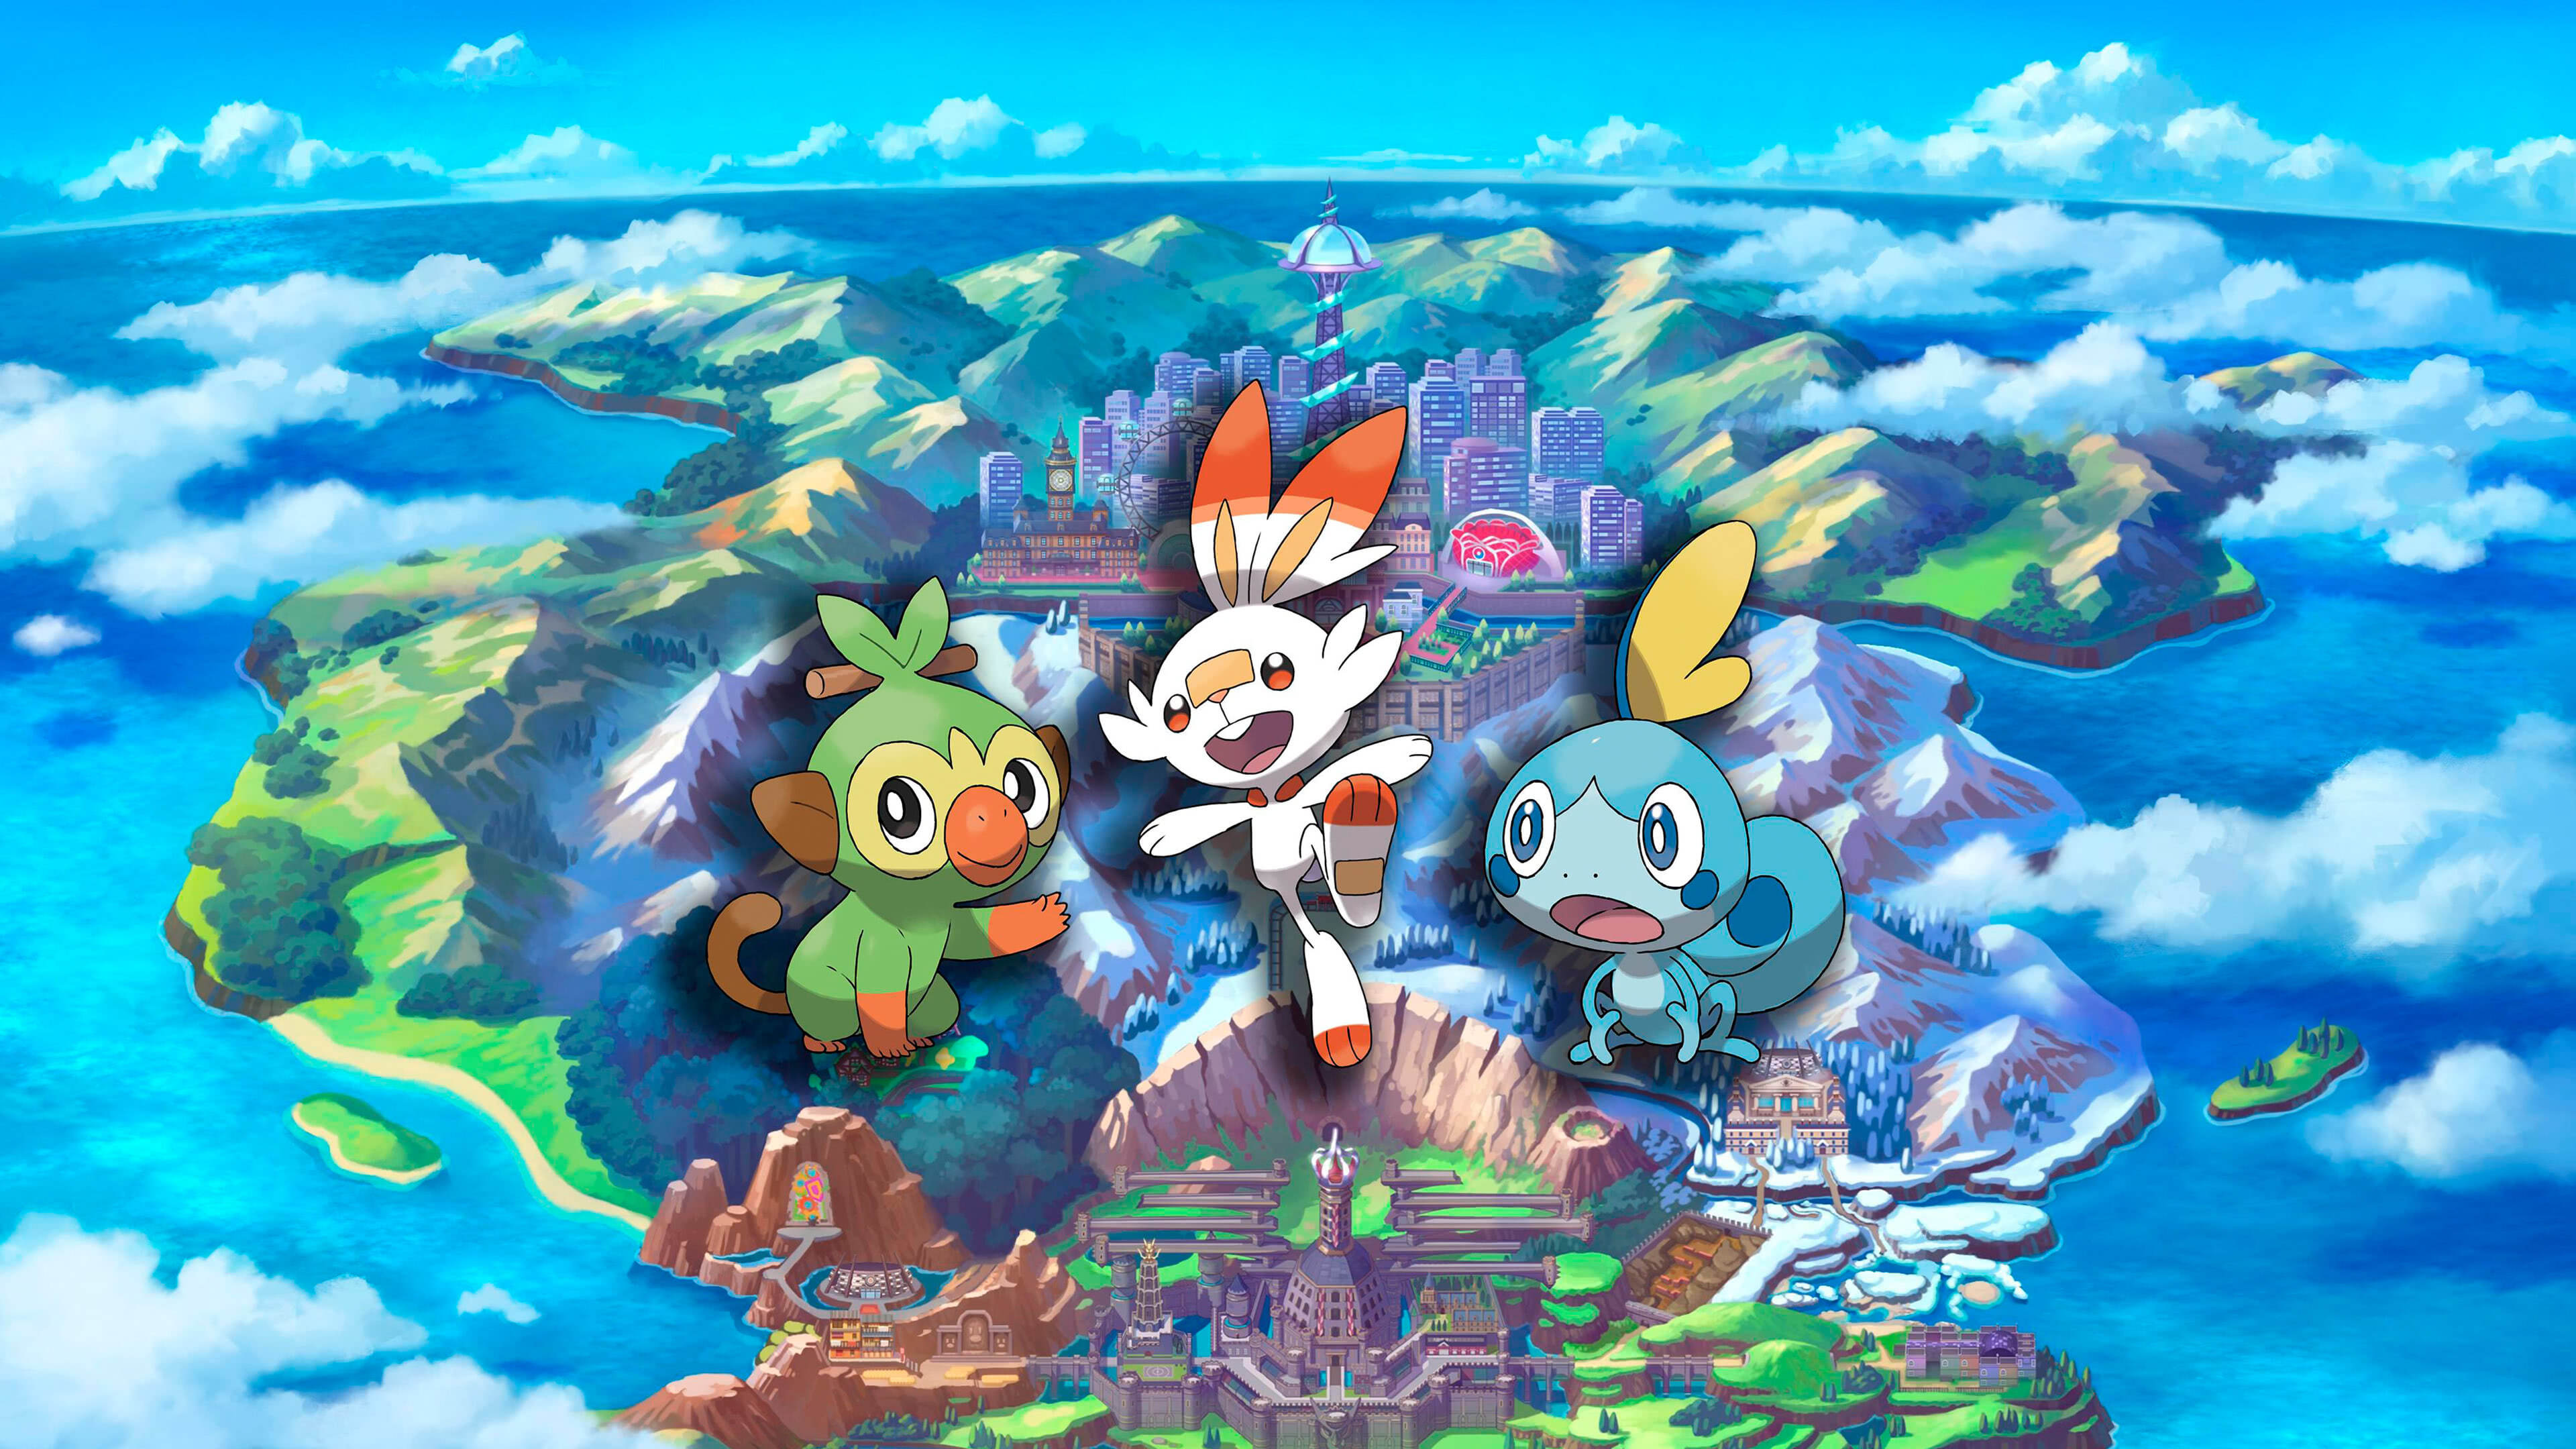 Pokemon Sword And Shield Sobble Grookey Scorbunny Uhd 4k Wallpaper Pixelz Grookey is the pokemon whish has one type (grass) from the 8 generation. pokemon sword and shield sobble grookey